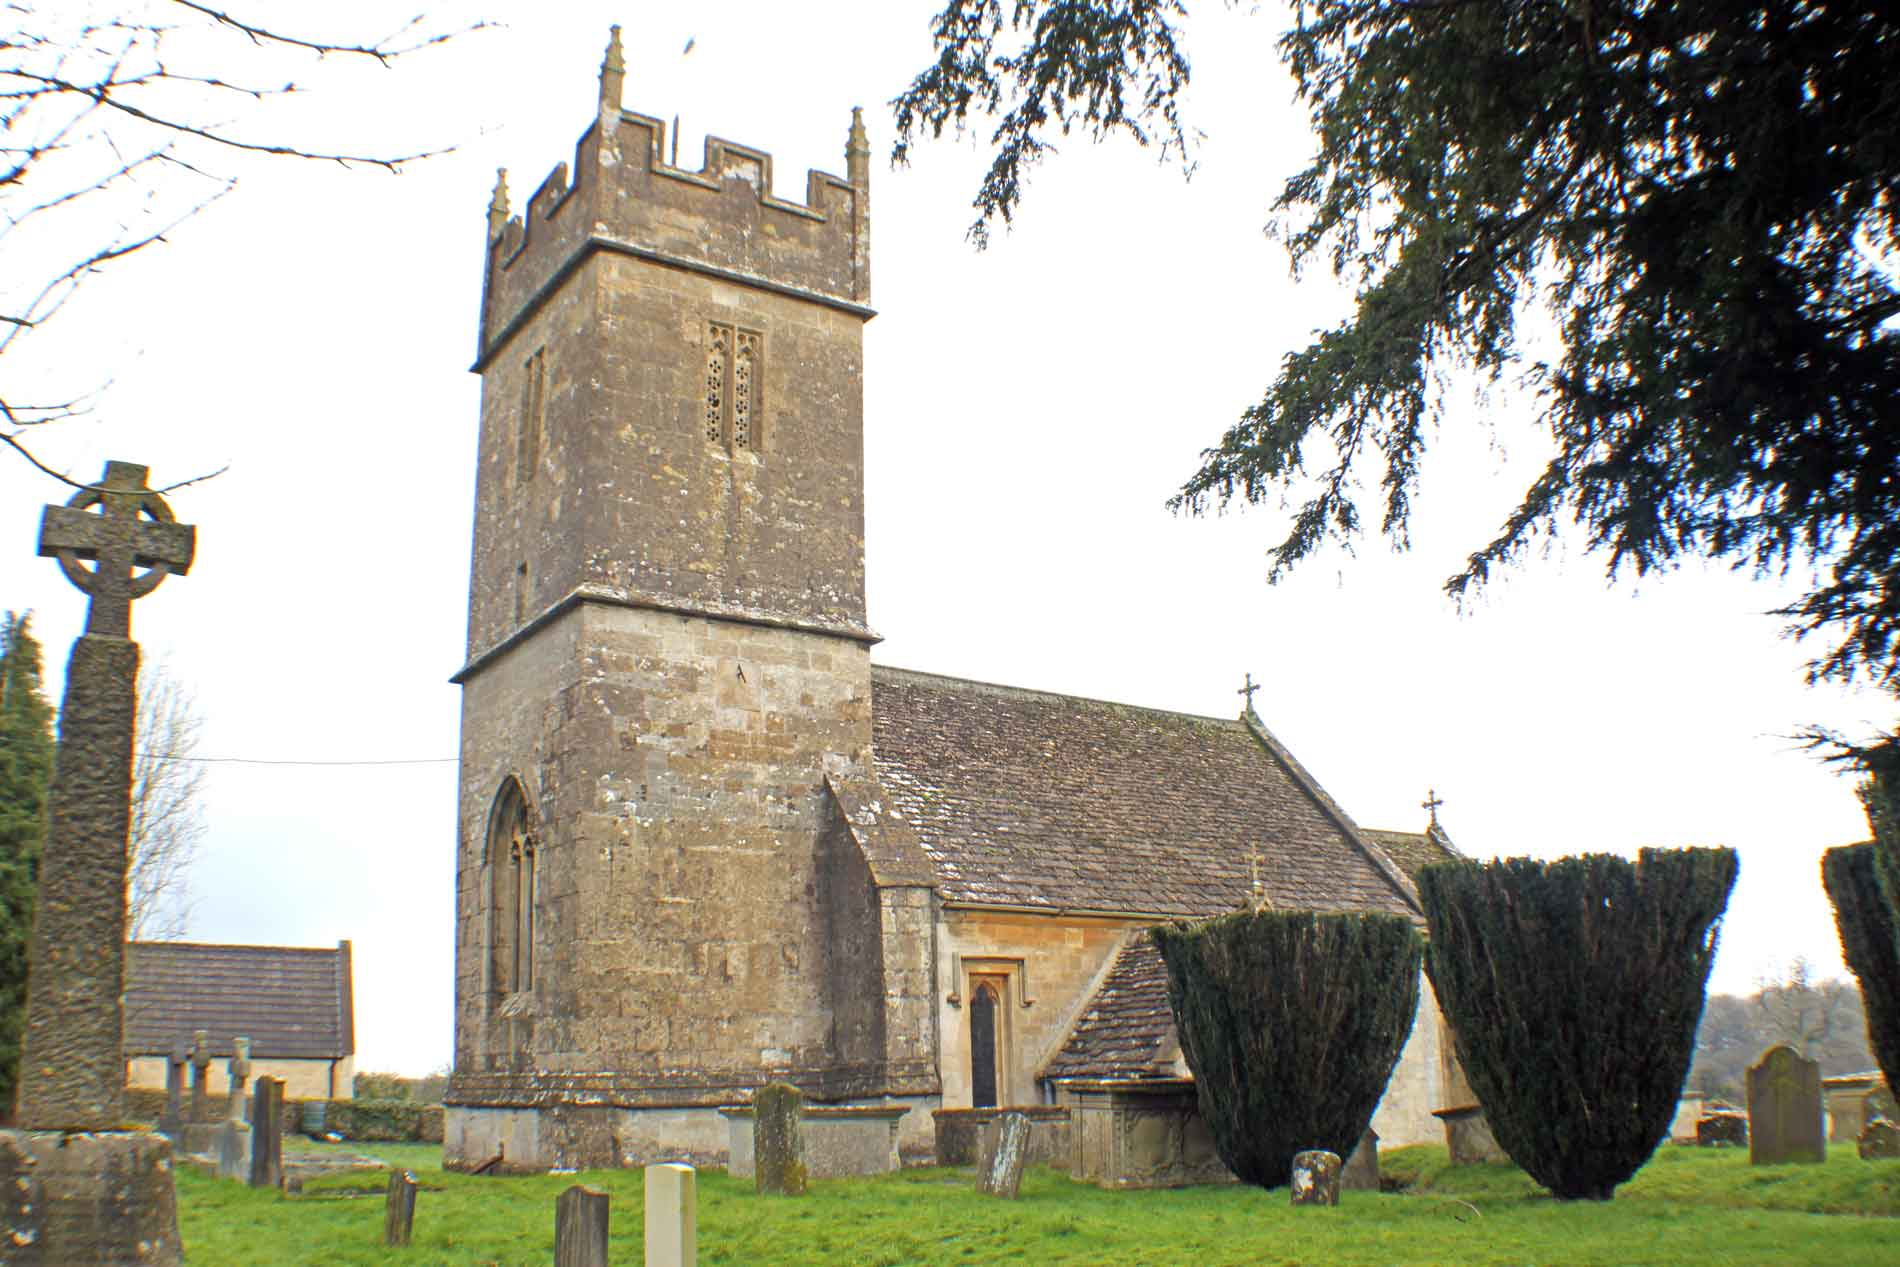 Sopworth Church, South Facade